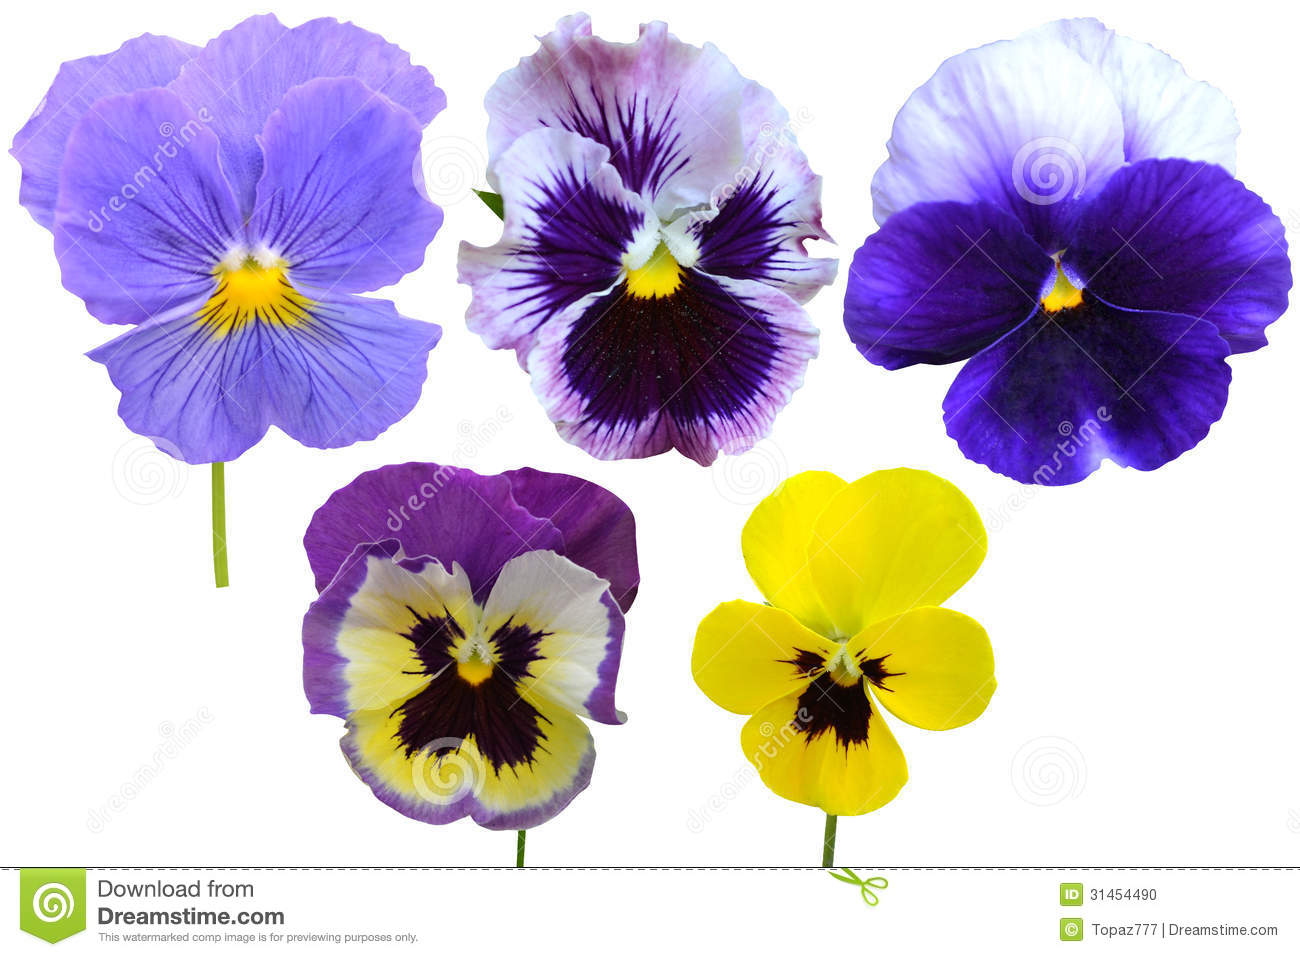 Picture of violets flowers free Wood Violets Flowers Stock Photo - Image: 19049330 free